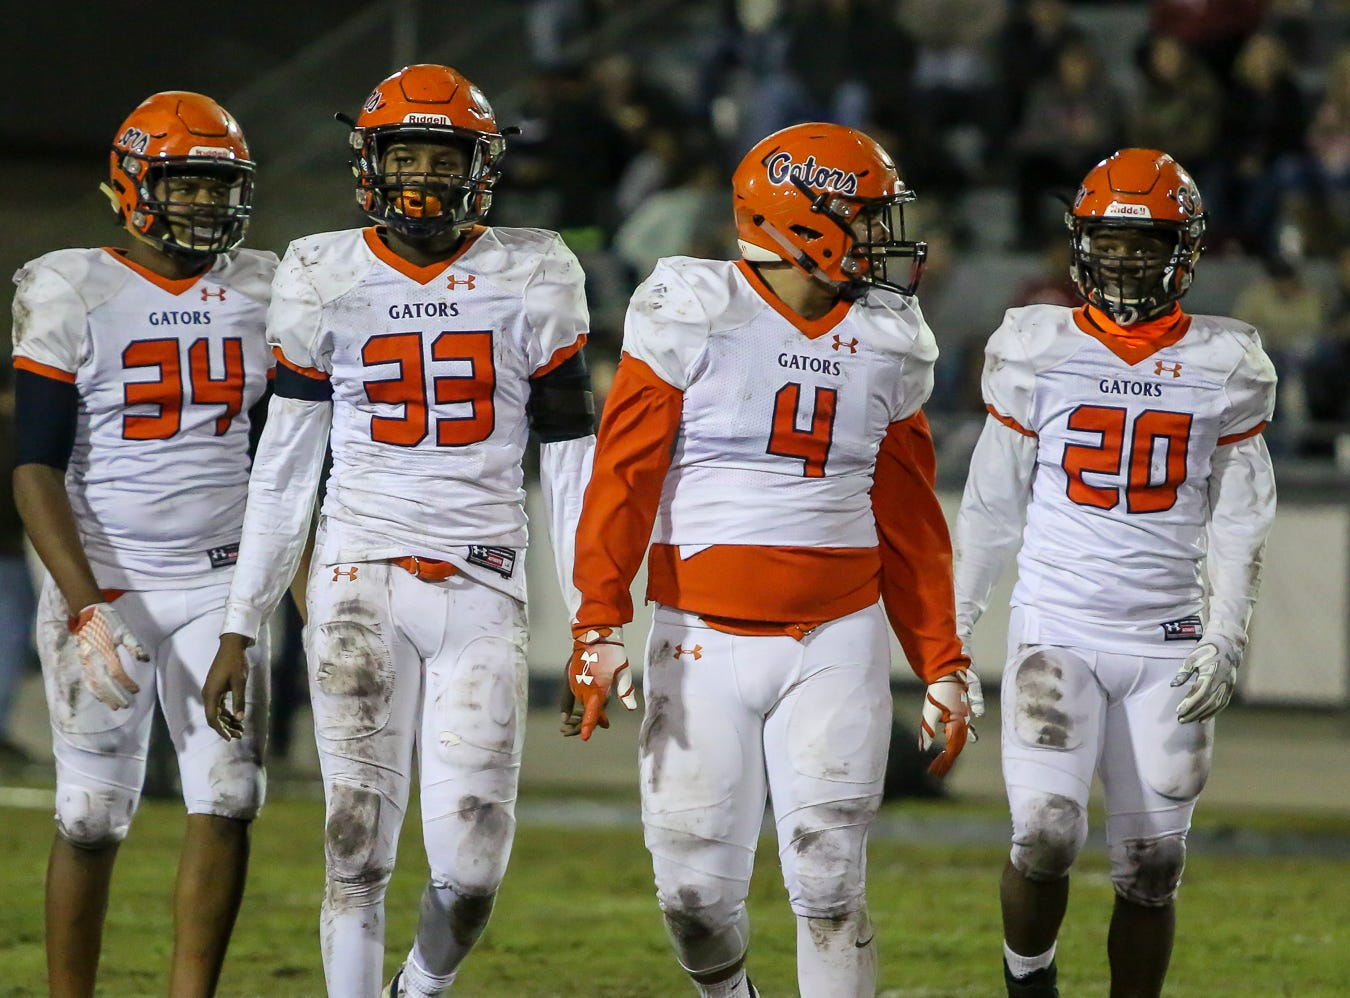 Escambia's Xavier Johnson (34), Joseph Minor (33), Noah Lord (4), and Tyshan Edwards (20) get ready for the next play against Navarre in the Region 1-6A Semifinal game at Navarre High School on Friday, November 16, 2018.